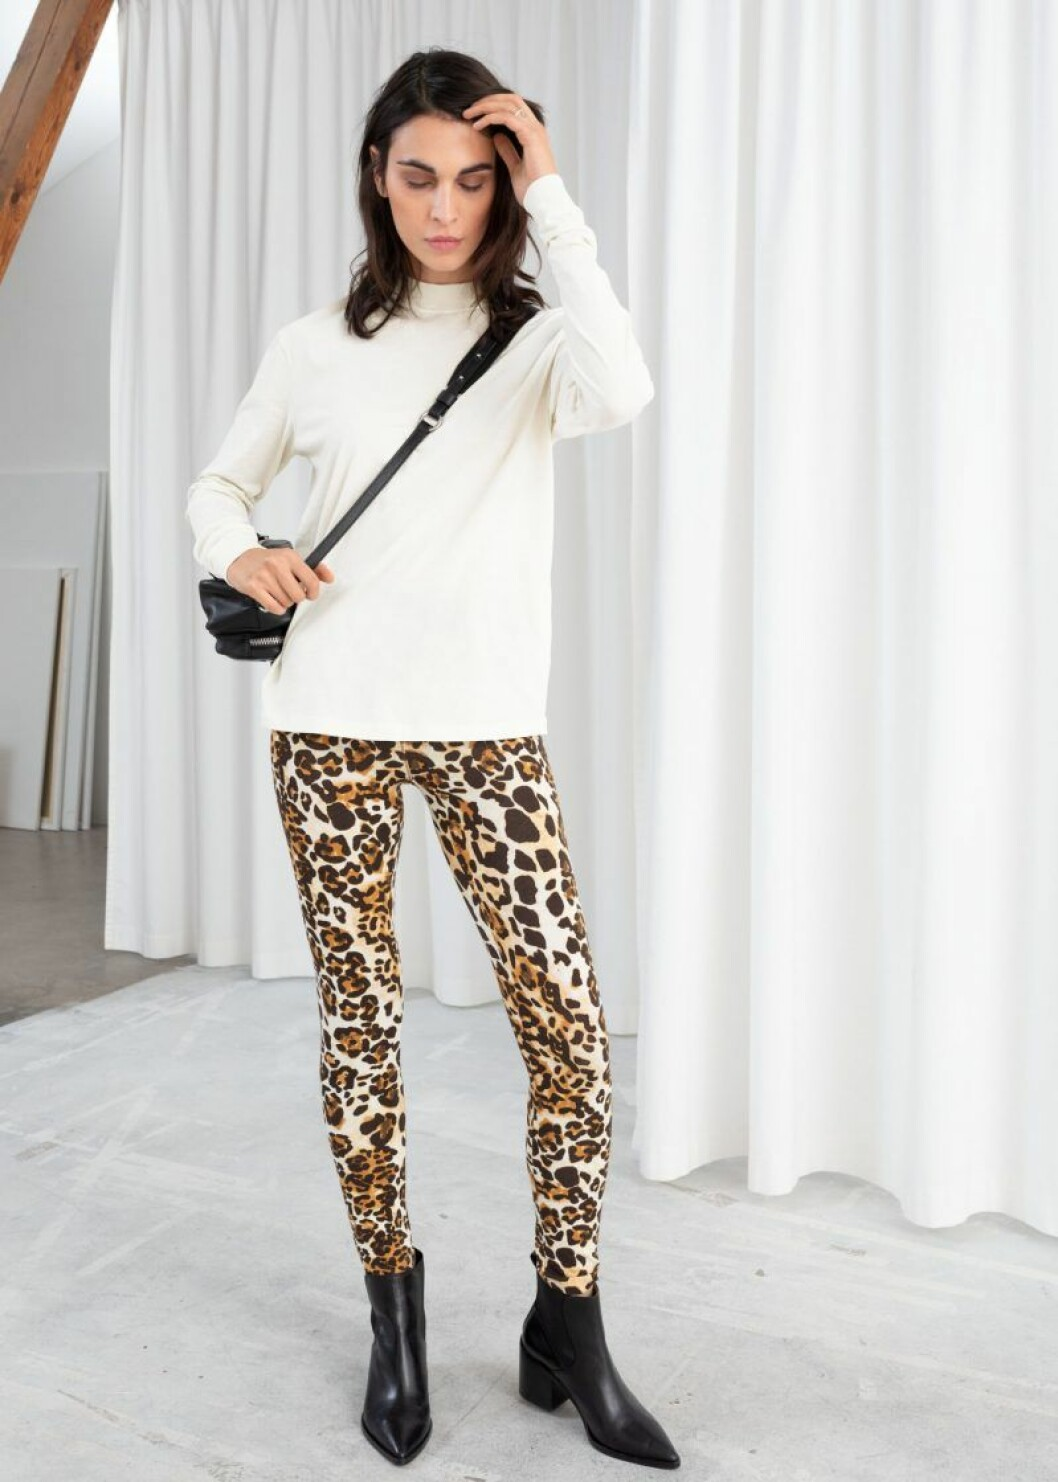 Leopardleggings